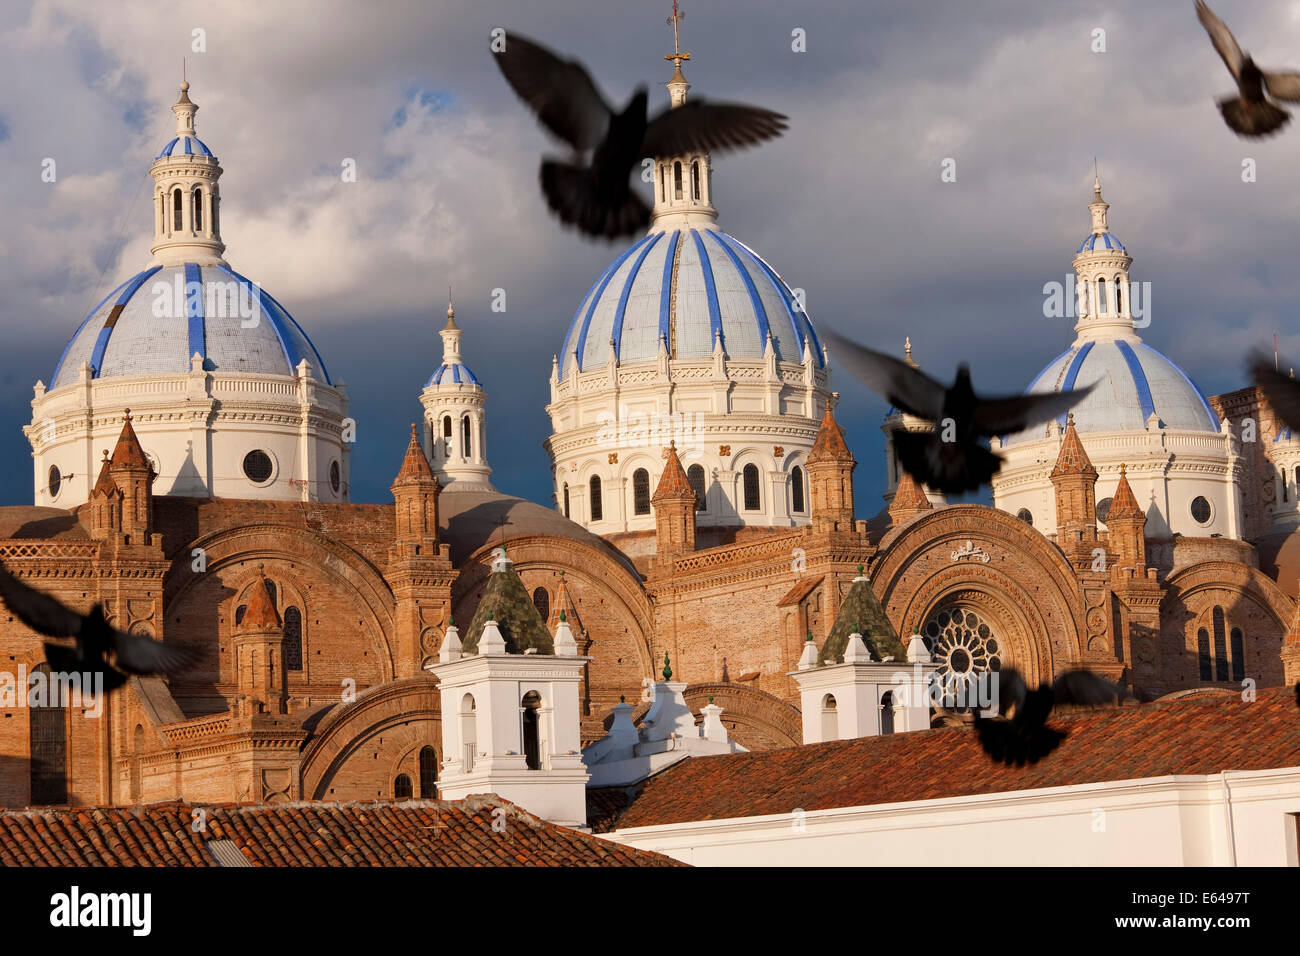 Cathedral of the Immaculate Conception, built in 1885, Cuenca, Ecuador - Stock Image